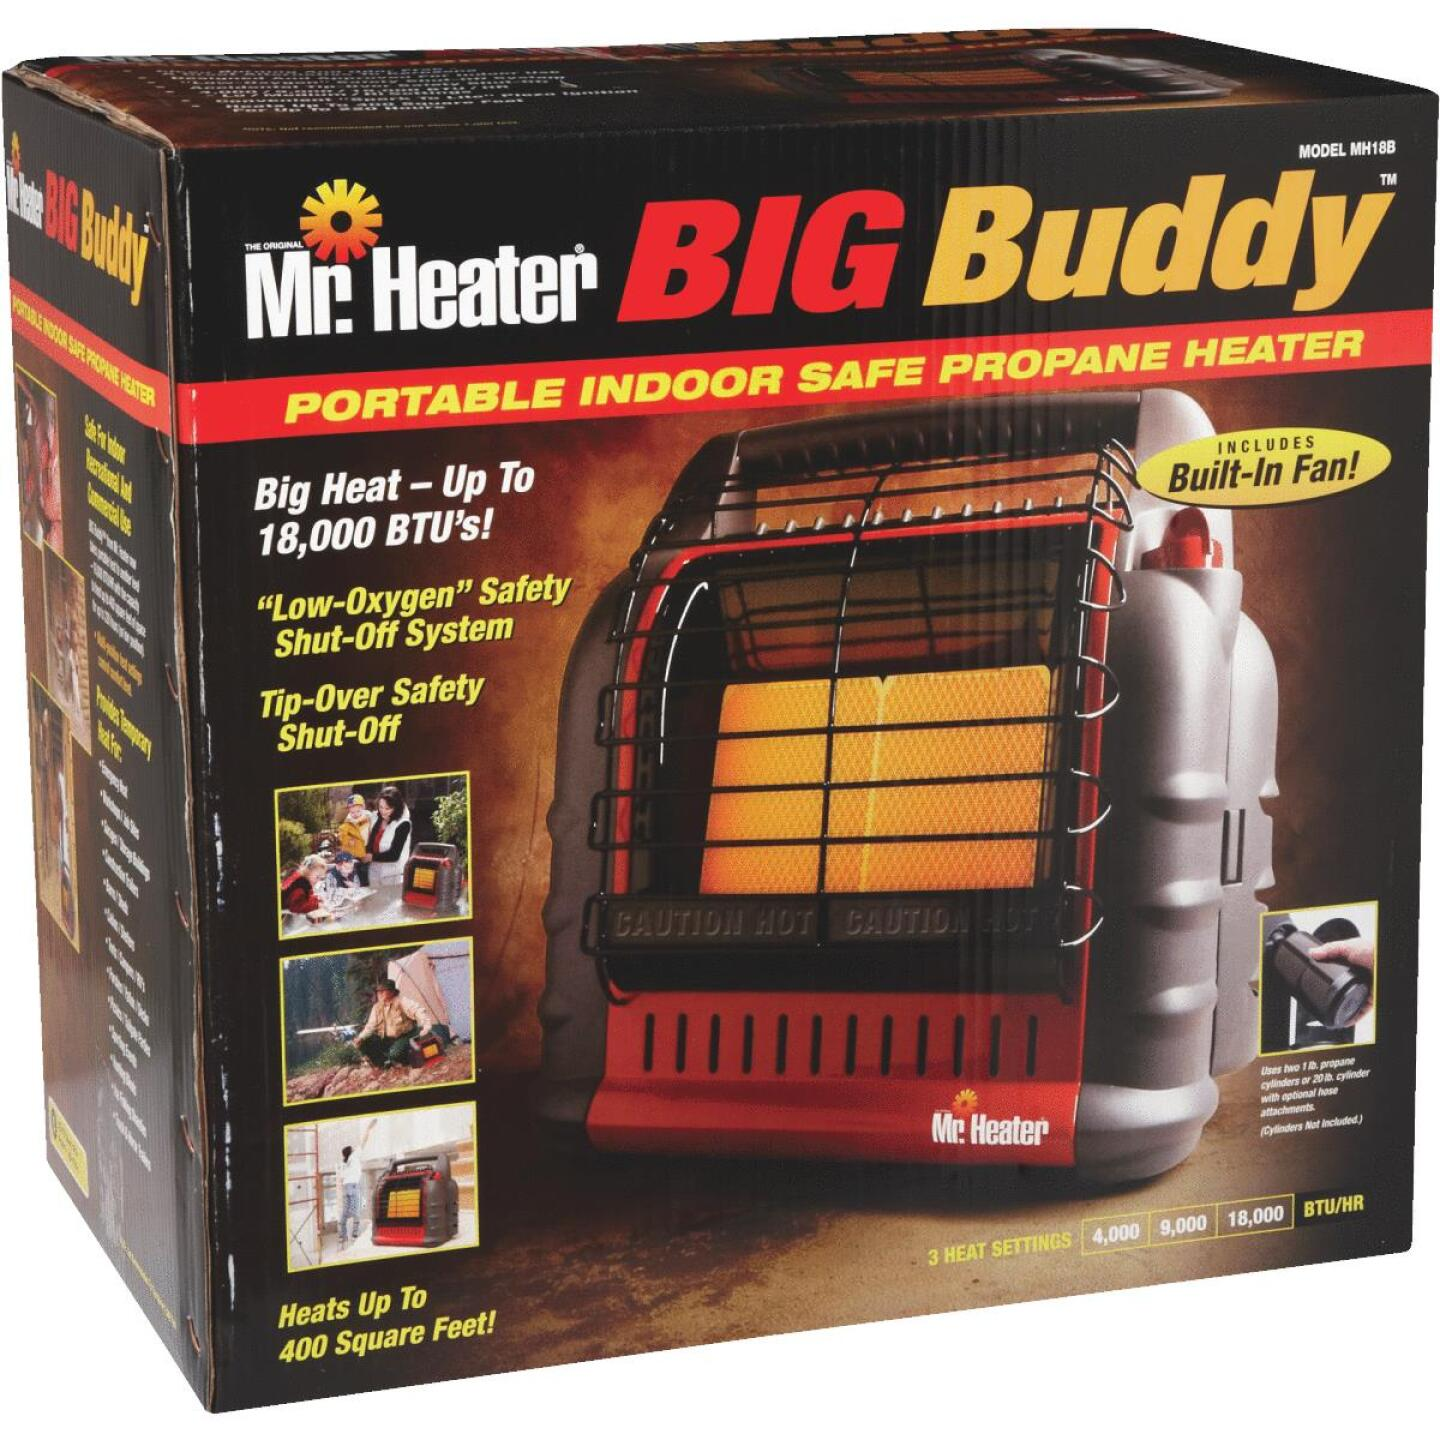 MR. HEATER 18,000 BTU Radiant Big Buddy Propane Heater Image 3